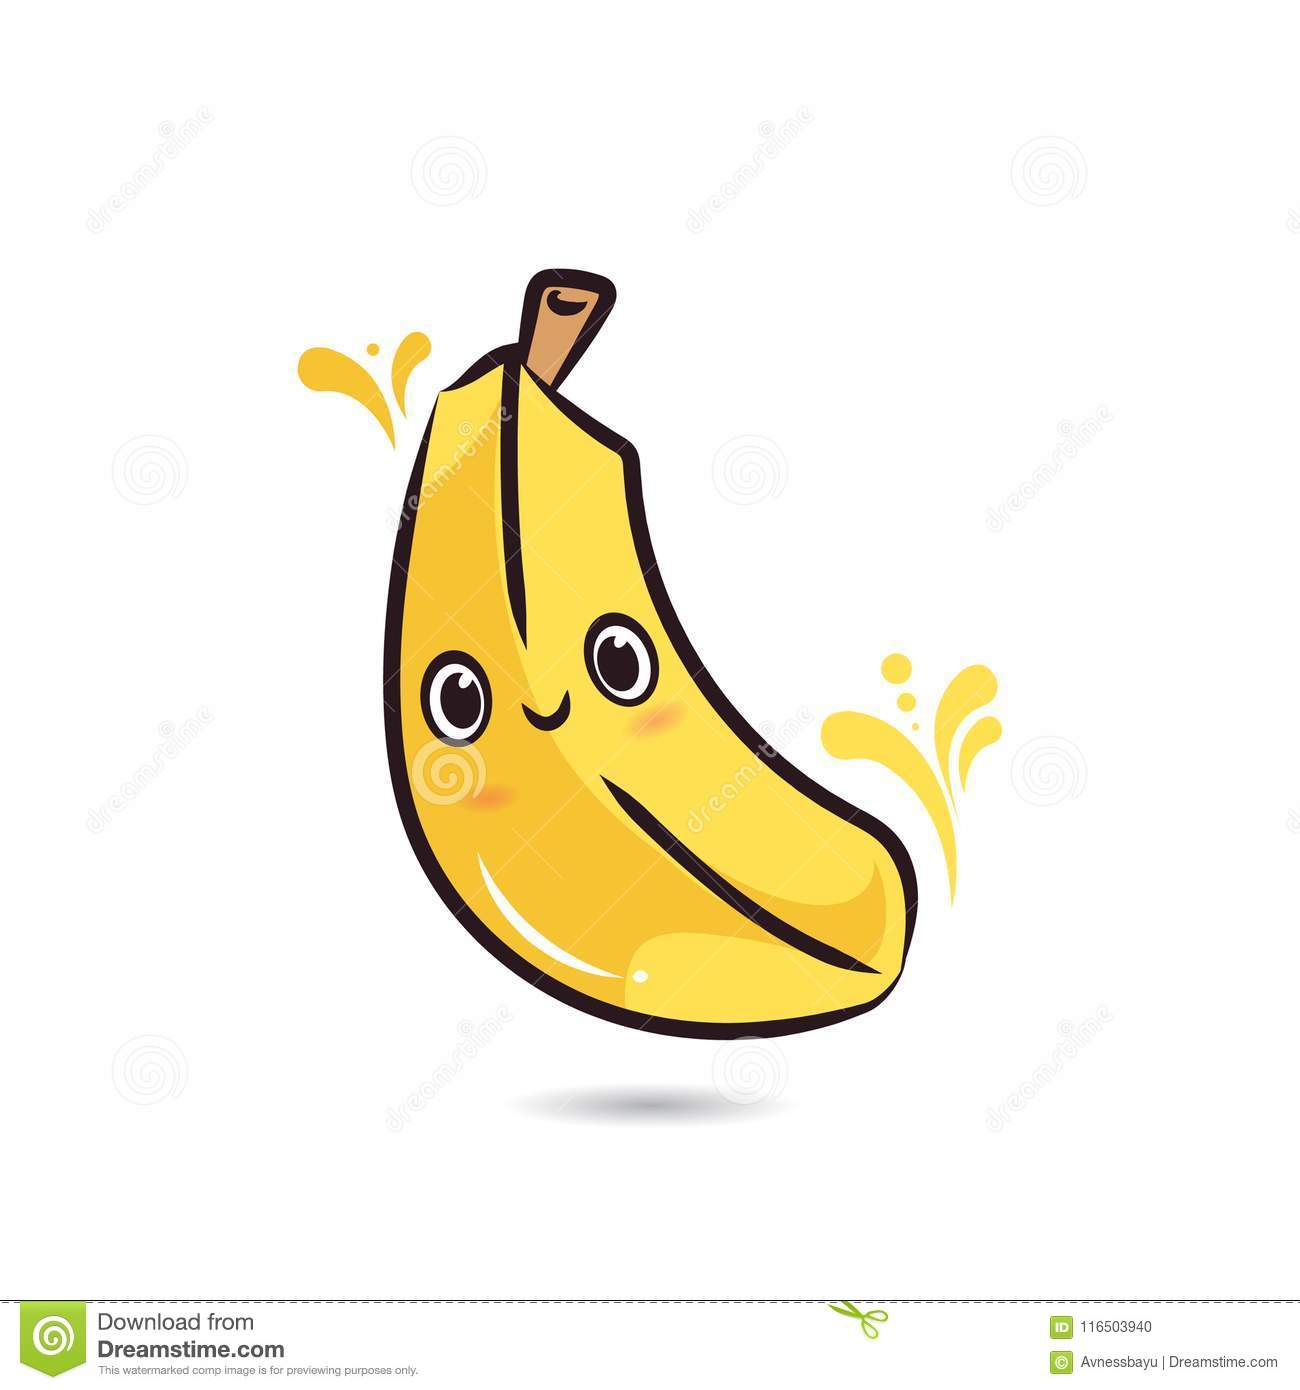 Cute Character Design Banana Face Stock Vector Illustration Of